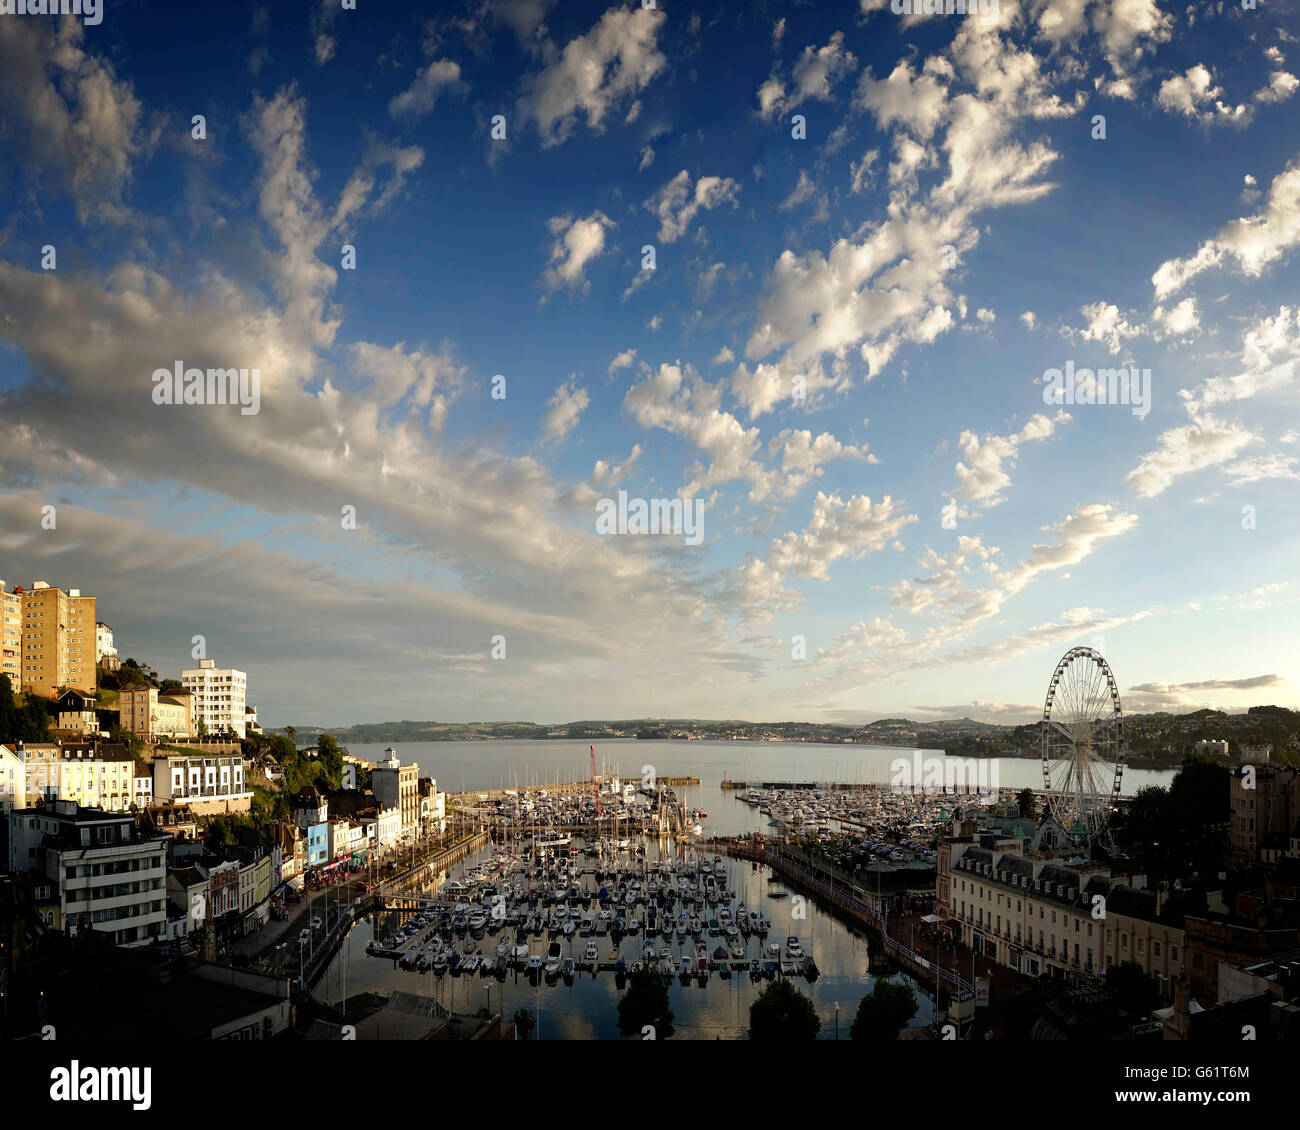 GB - DEVON: Torquay Harbour Stock Photo